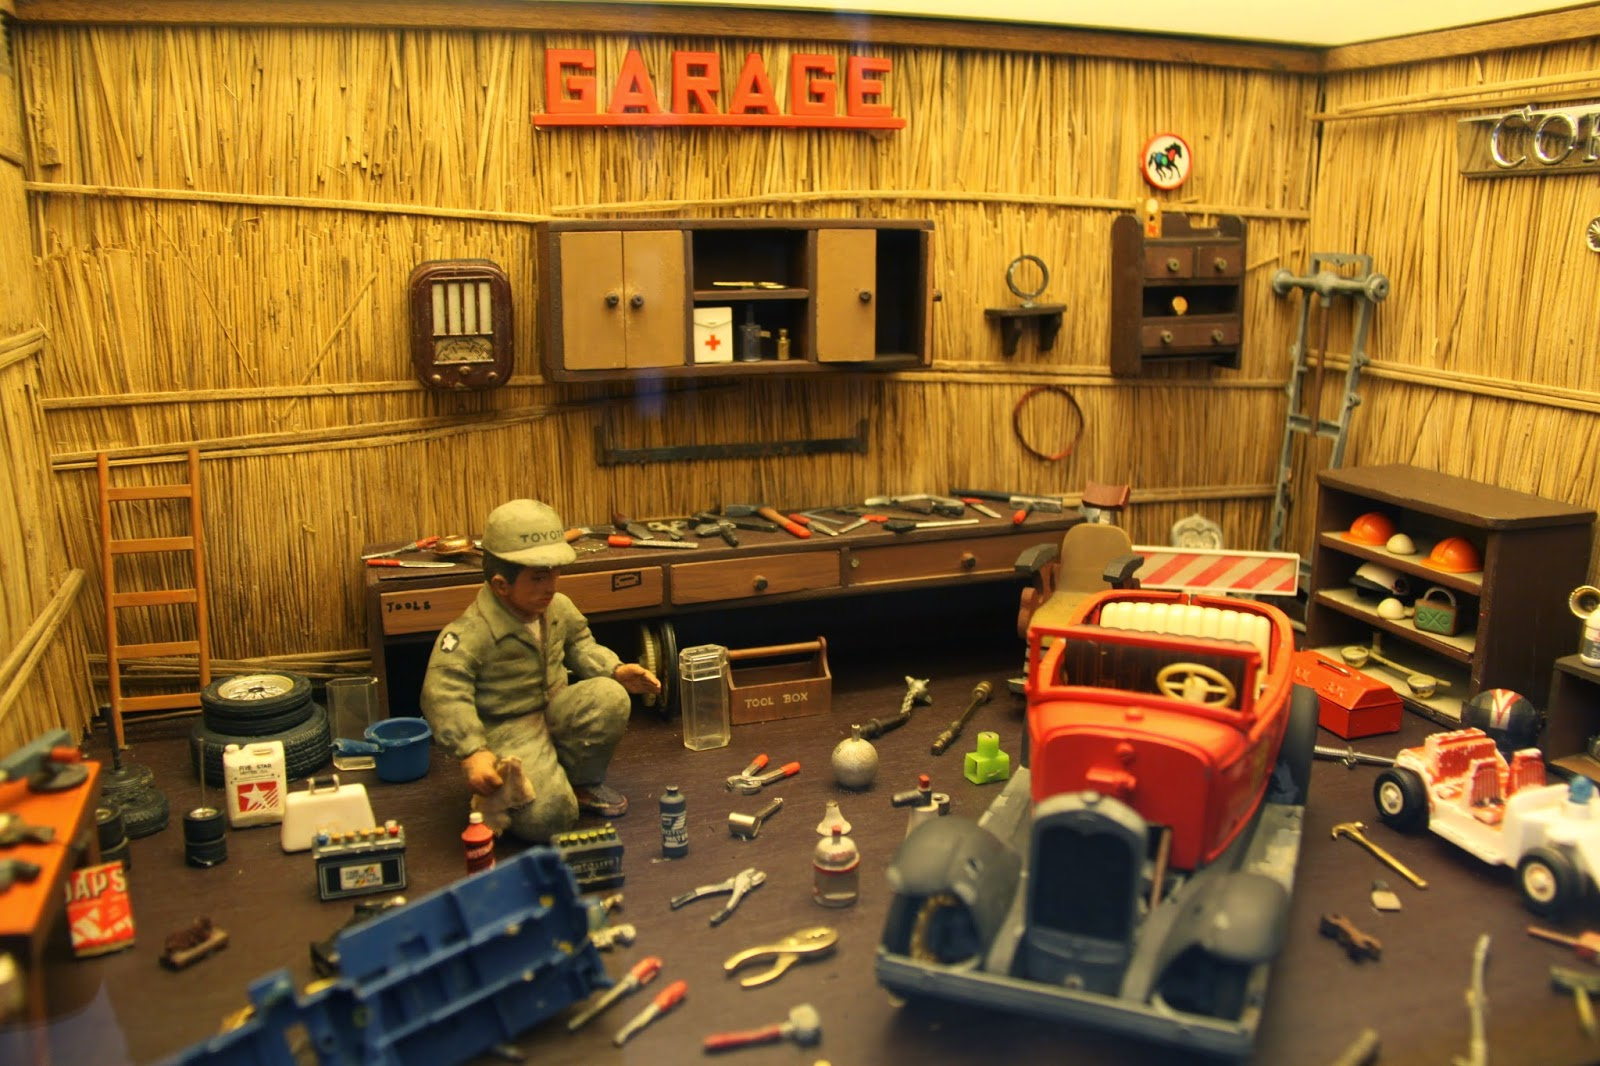 Garage: Miniature Museum